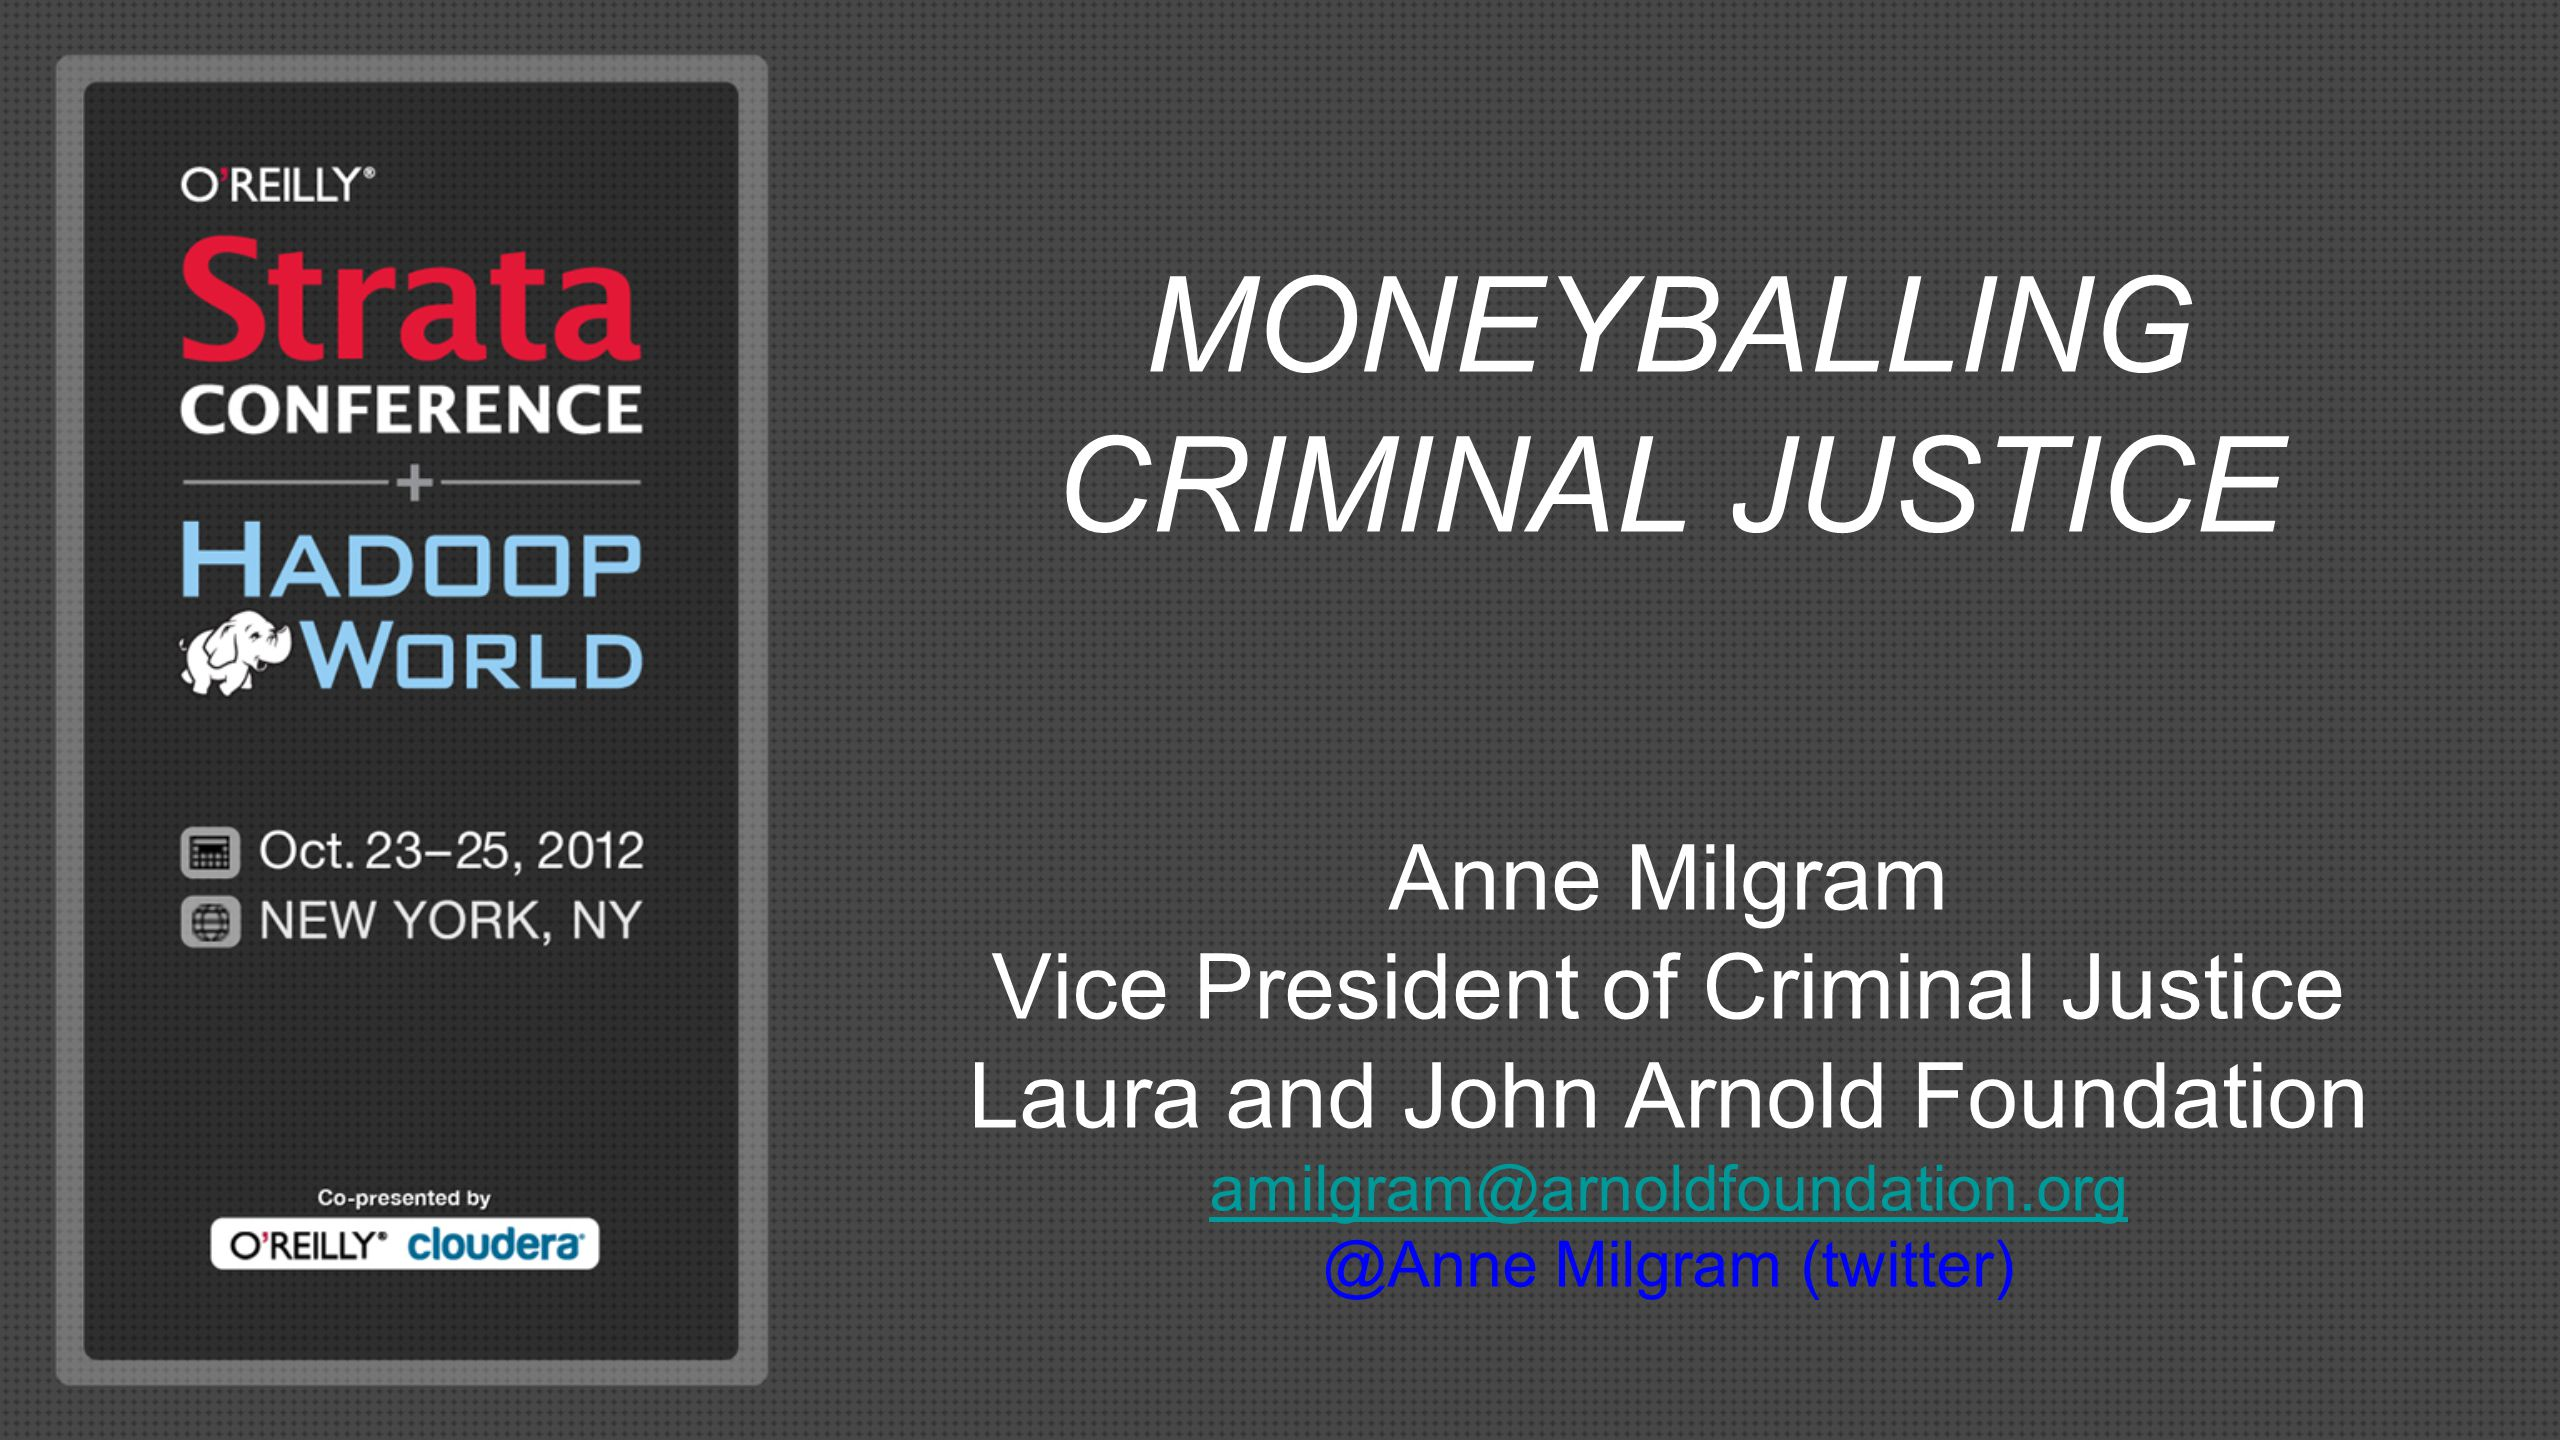 MONEYBALLING CRIMINAL JUSTICE Anne Milgram Vice President of Criminal Justice Laura and John Arnold Foundation amilgram@arnoldfoundation.org @Anne Mil